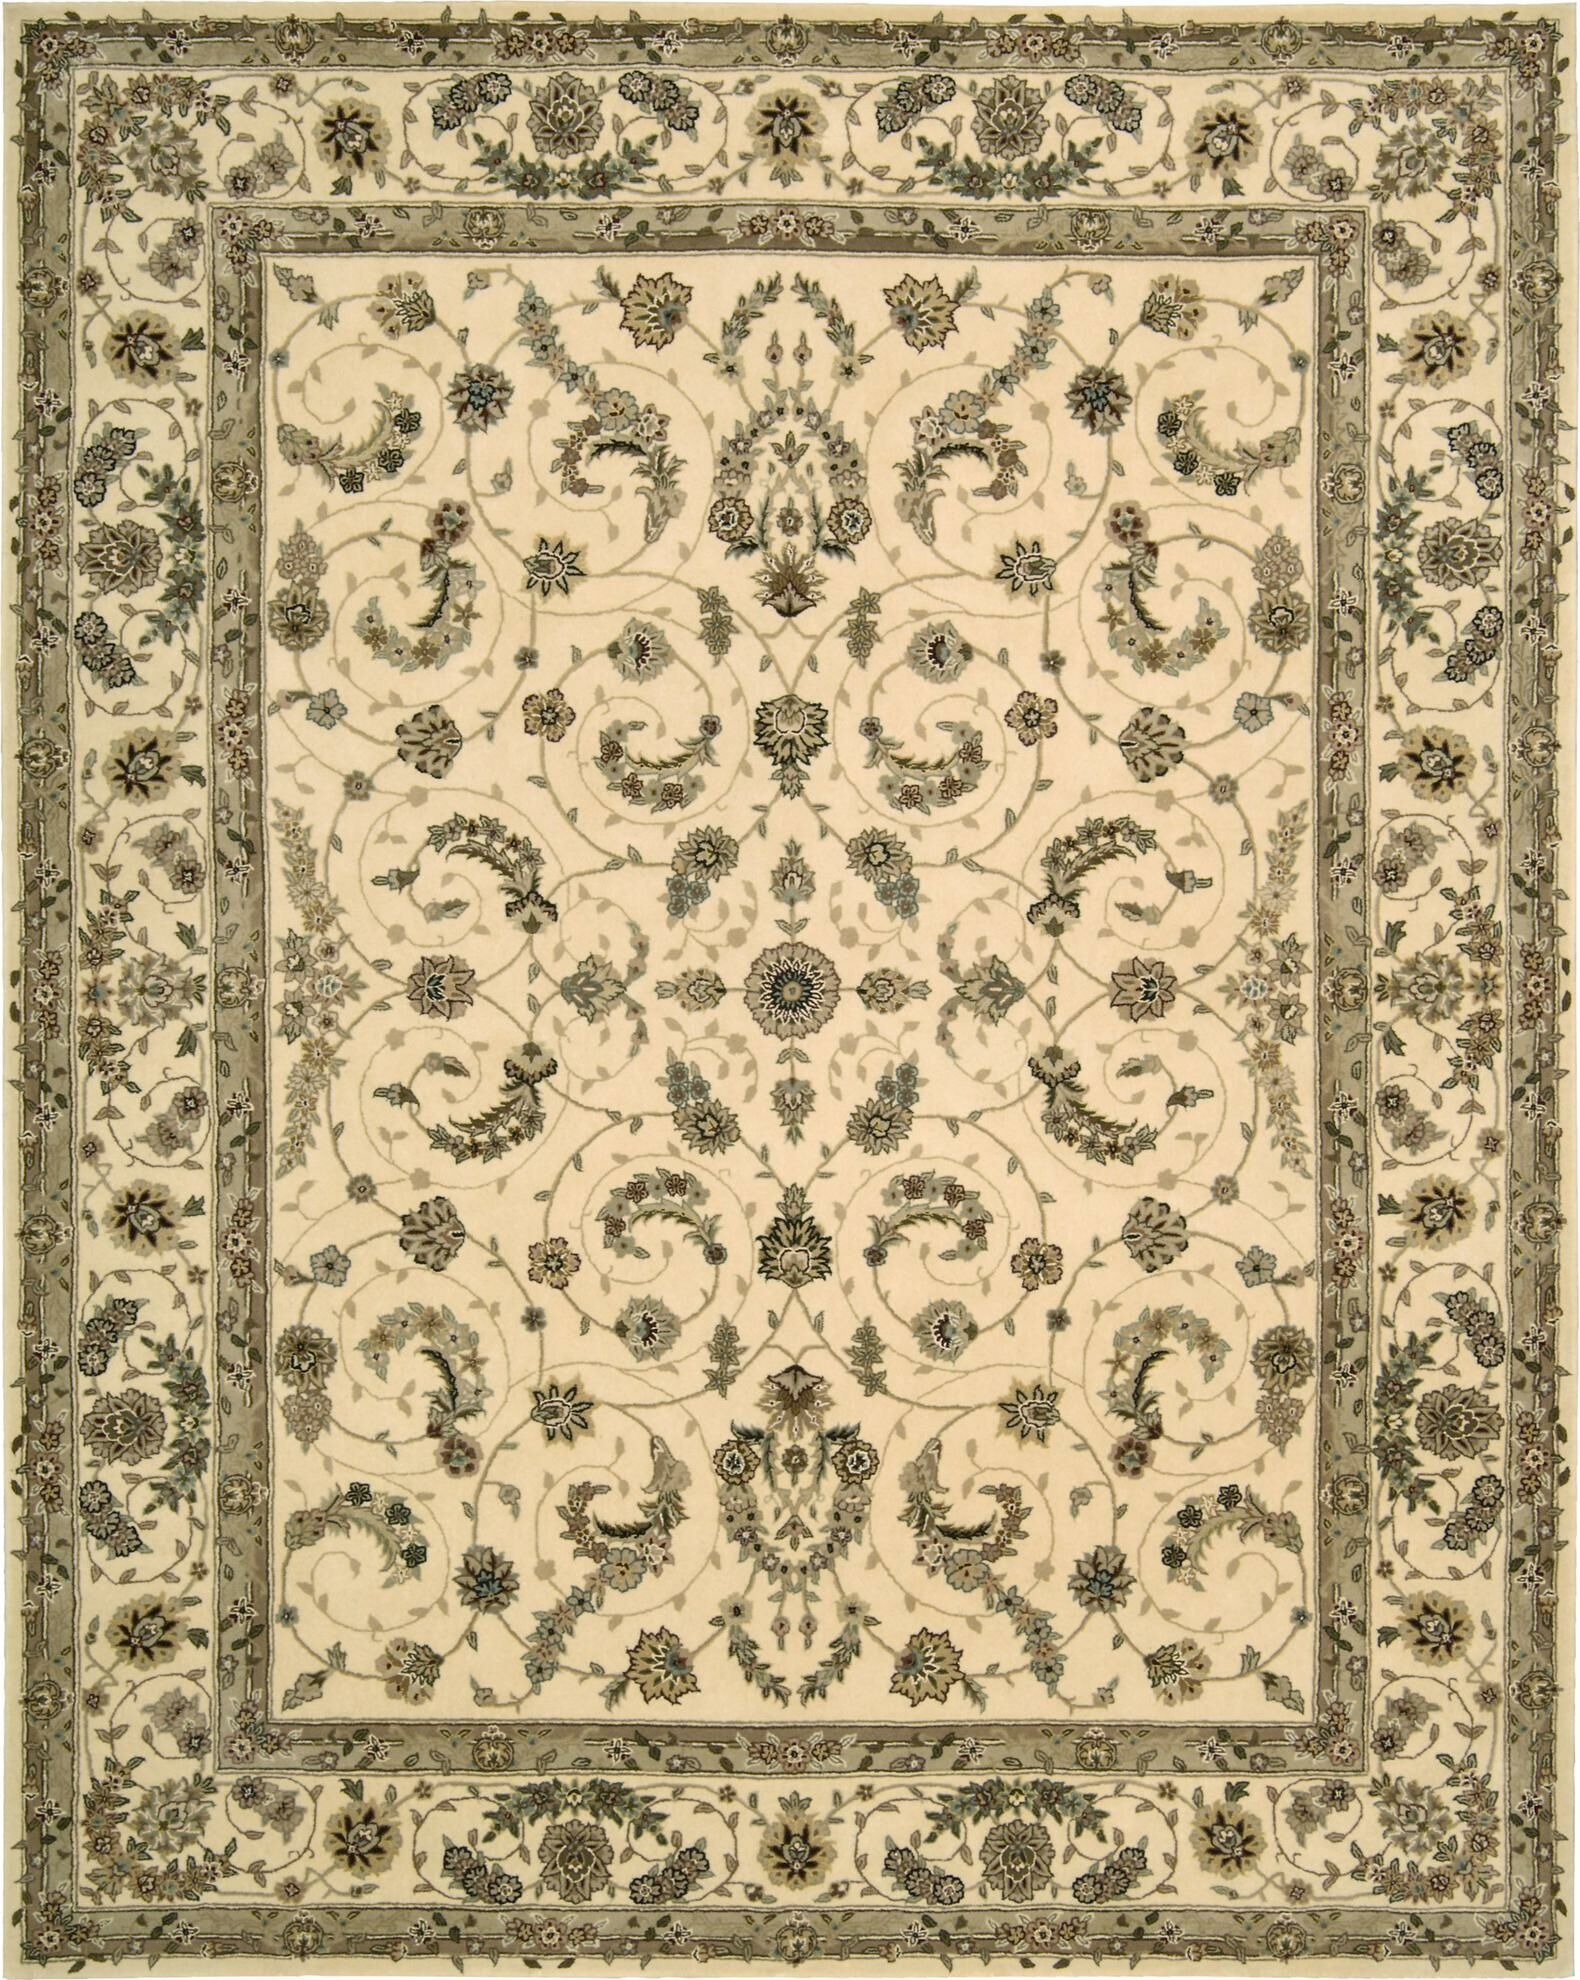 Hemming Hand-Tufted Ivory Area Rug Rug Size: Rectangle 3'6